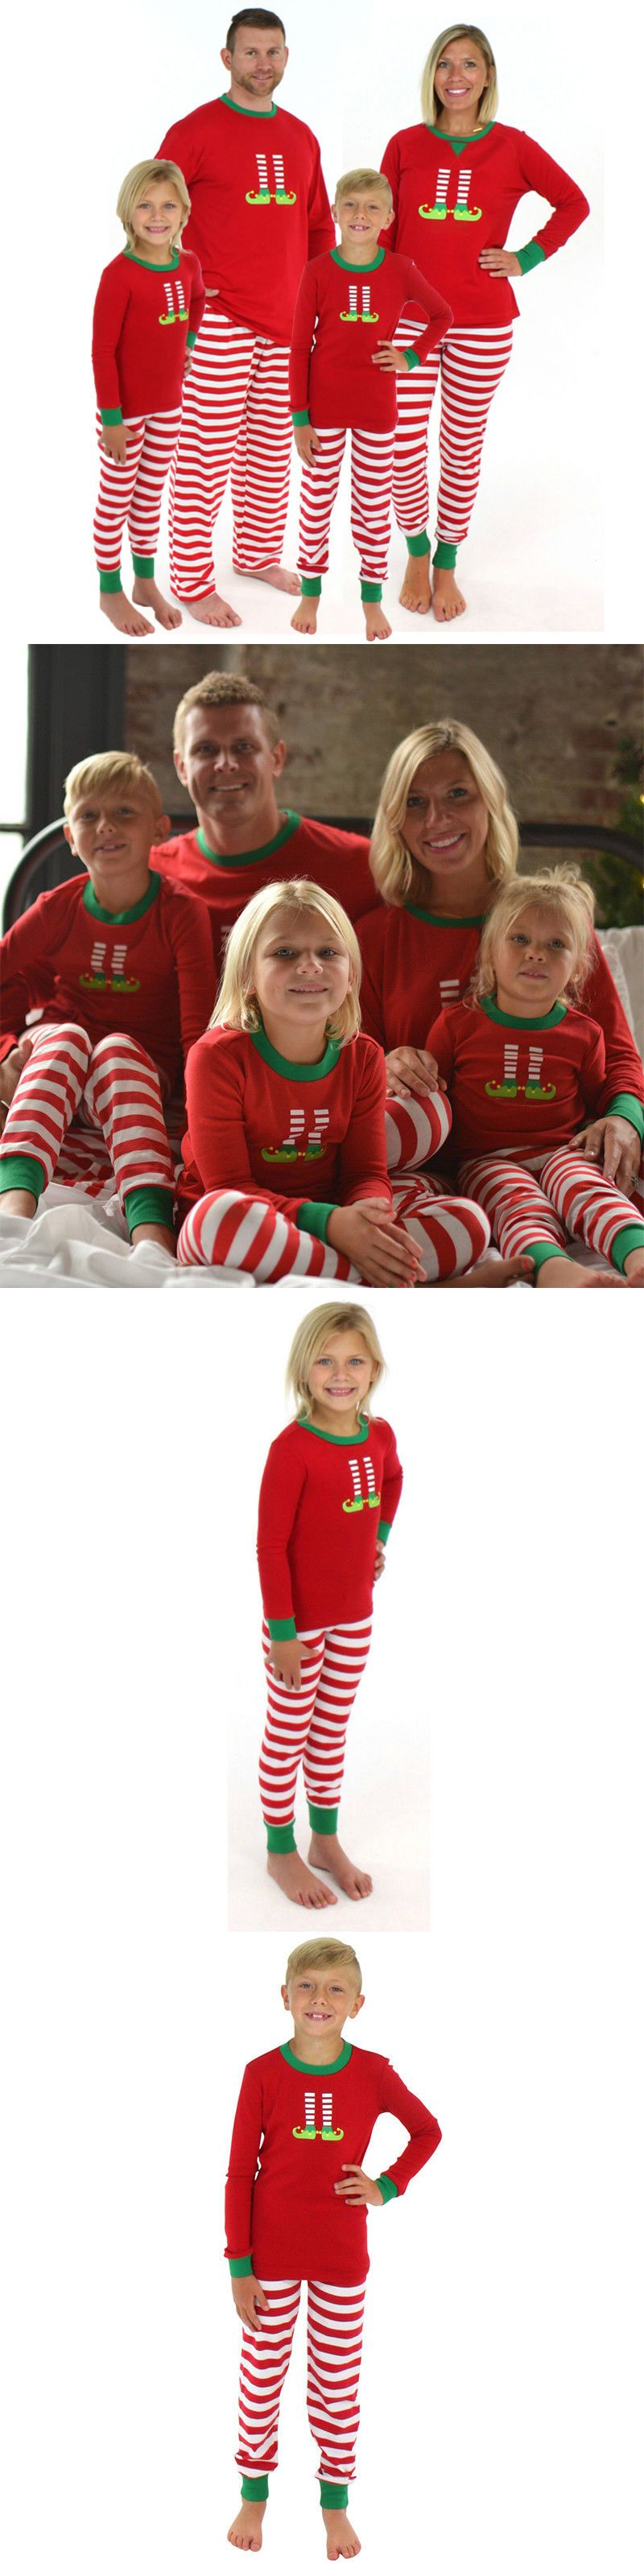 Sleepwear  Family Matching Christmas Pajamas Set Women Baby Kids Elf Sleepwear Nightwear Us Buy It Now Only   On Ebay Sleepwear Family